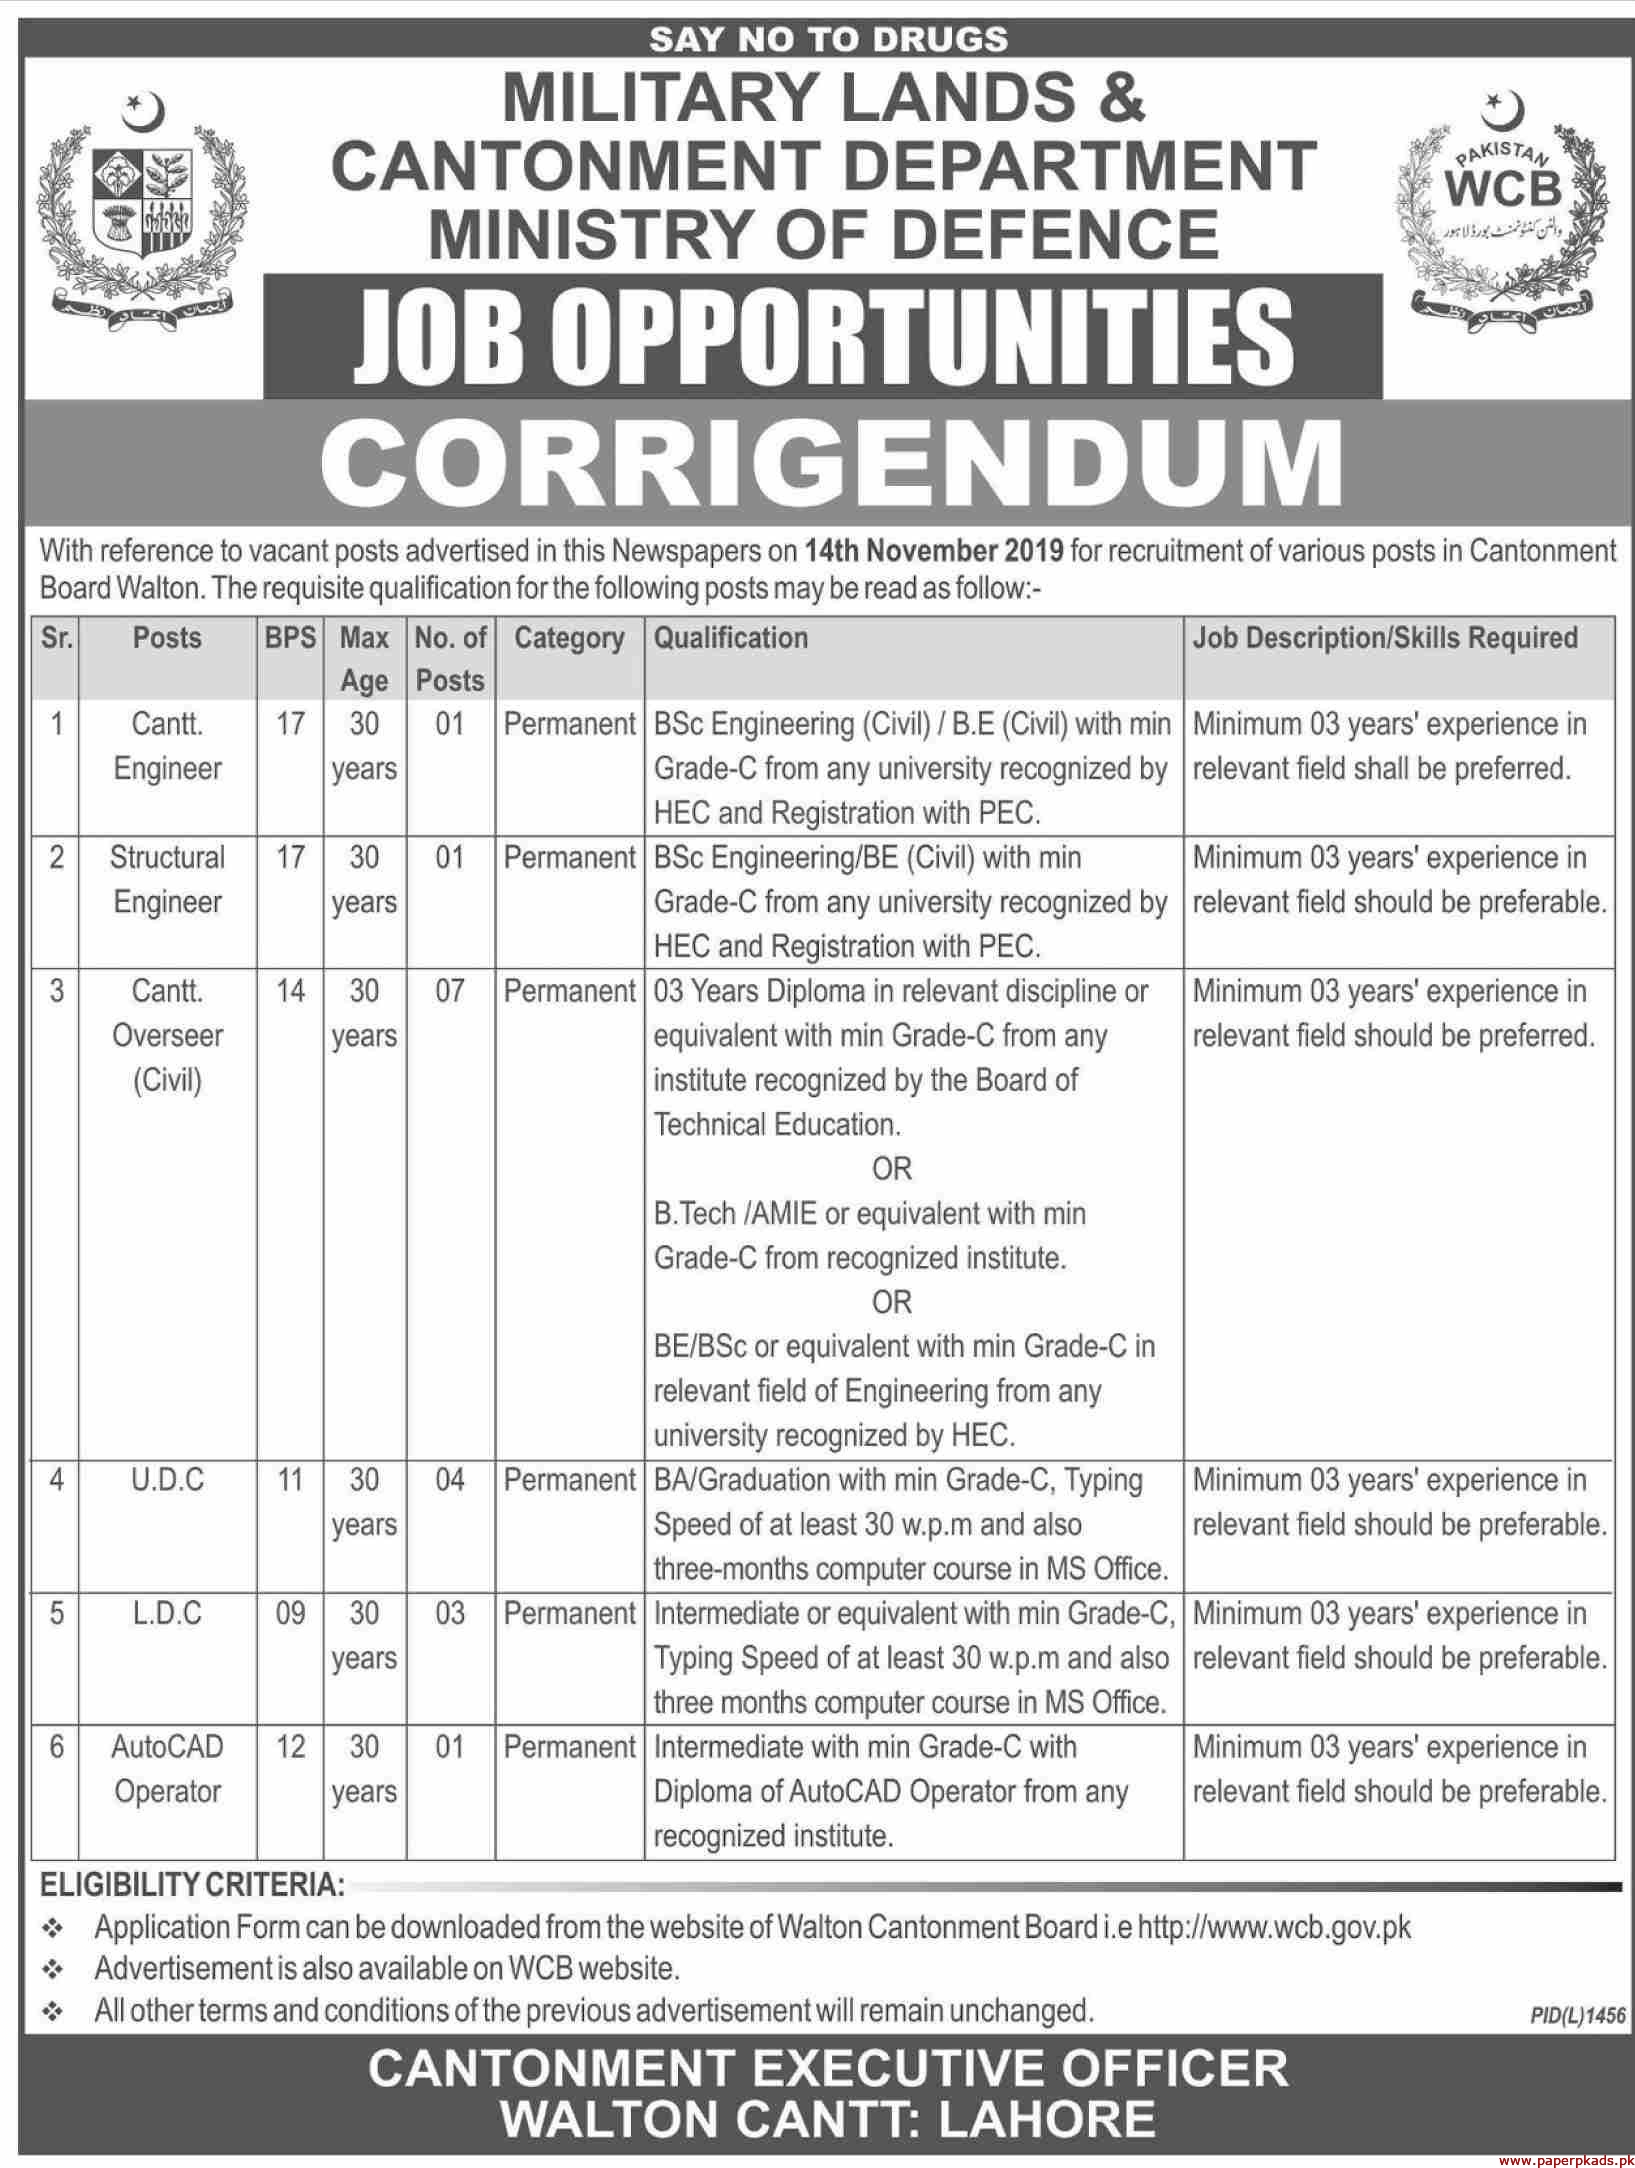 Military Lands & Cantonment Department Ministry of Defence Jobs 2019 Latest